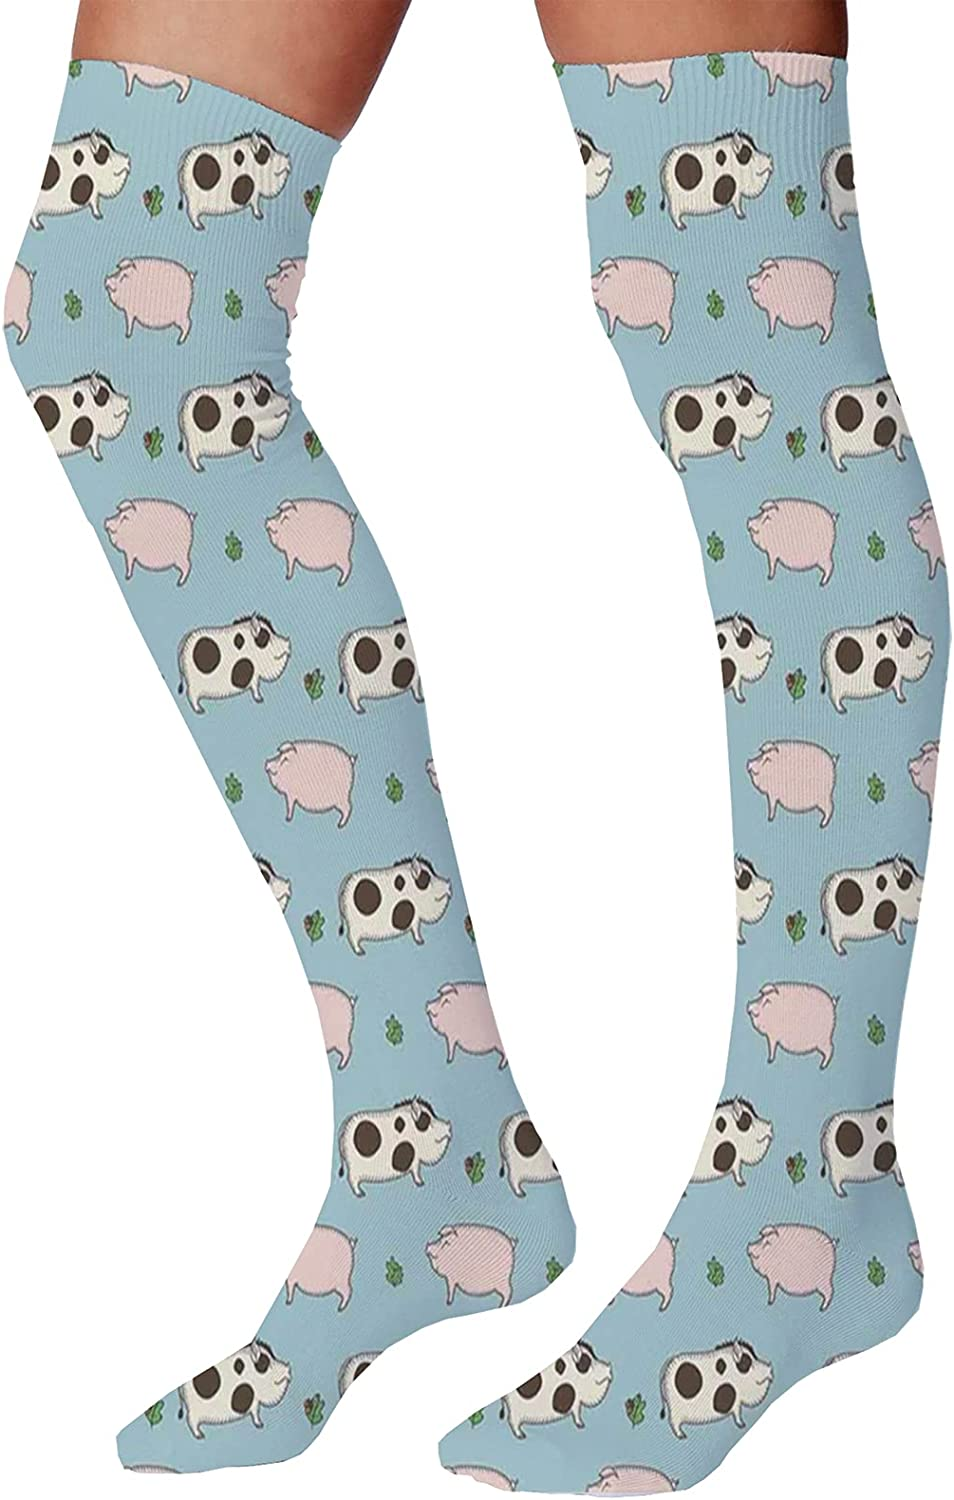 Unisex Dress Cool Colorful Fancy Novelty Funny Casual Combed Cotton Crew SocksDoodle Pattern with Pig Boar and Oak Twig Figures on Blue Background in Cartoon Style